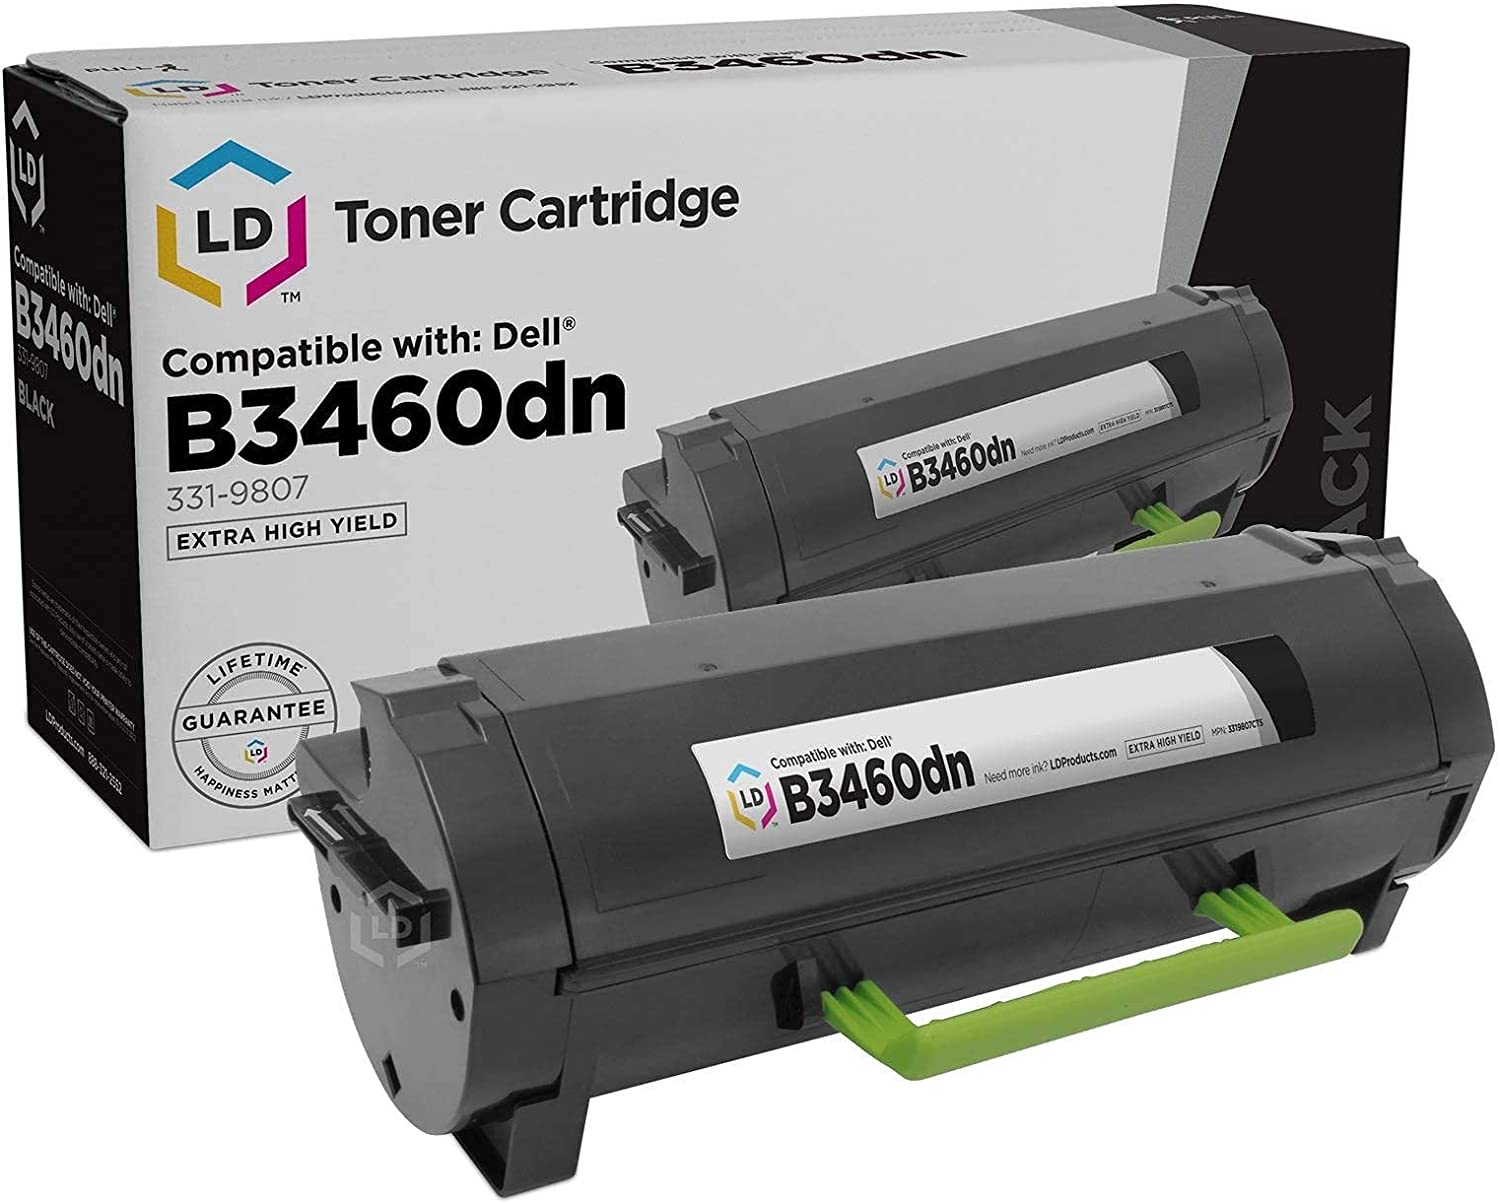 LD Compatible Toner Cartridge Replacement for Dell B3460 331-9807 Extra High Yield (Black)